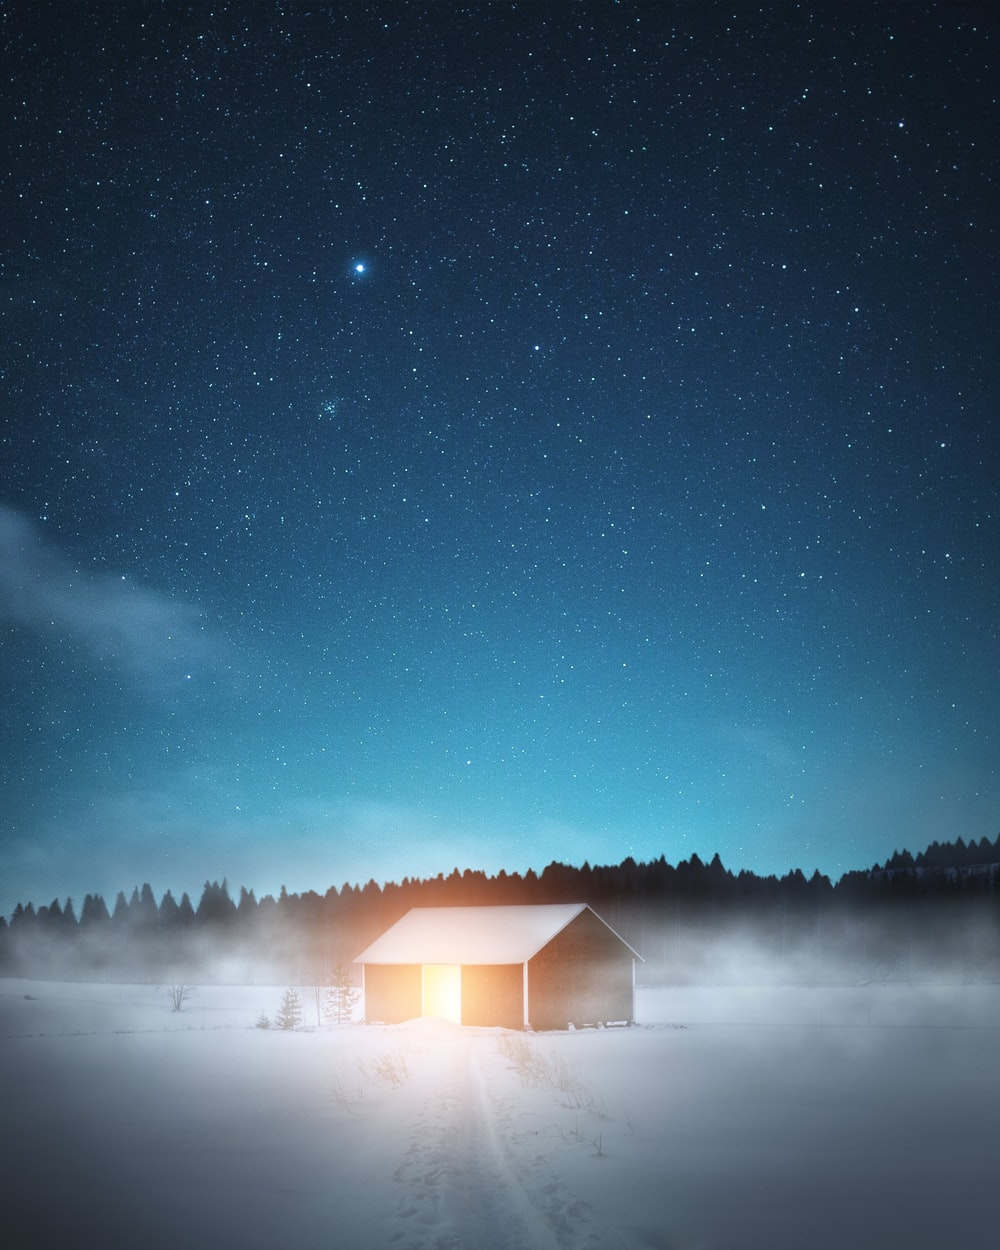 brown wooden house on snow covered ground under starry night